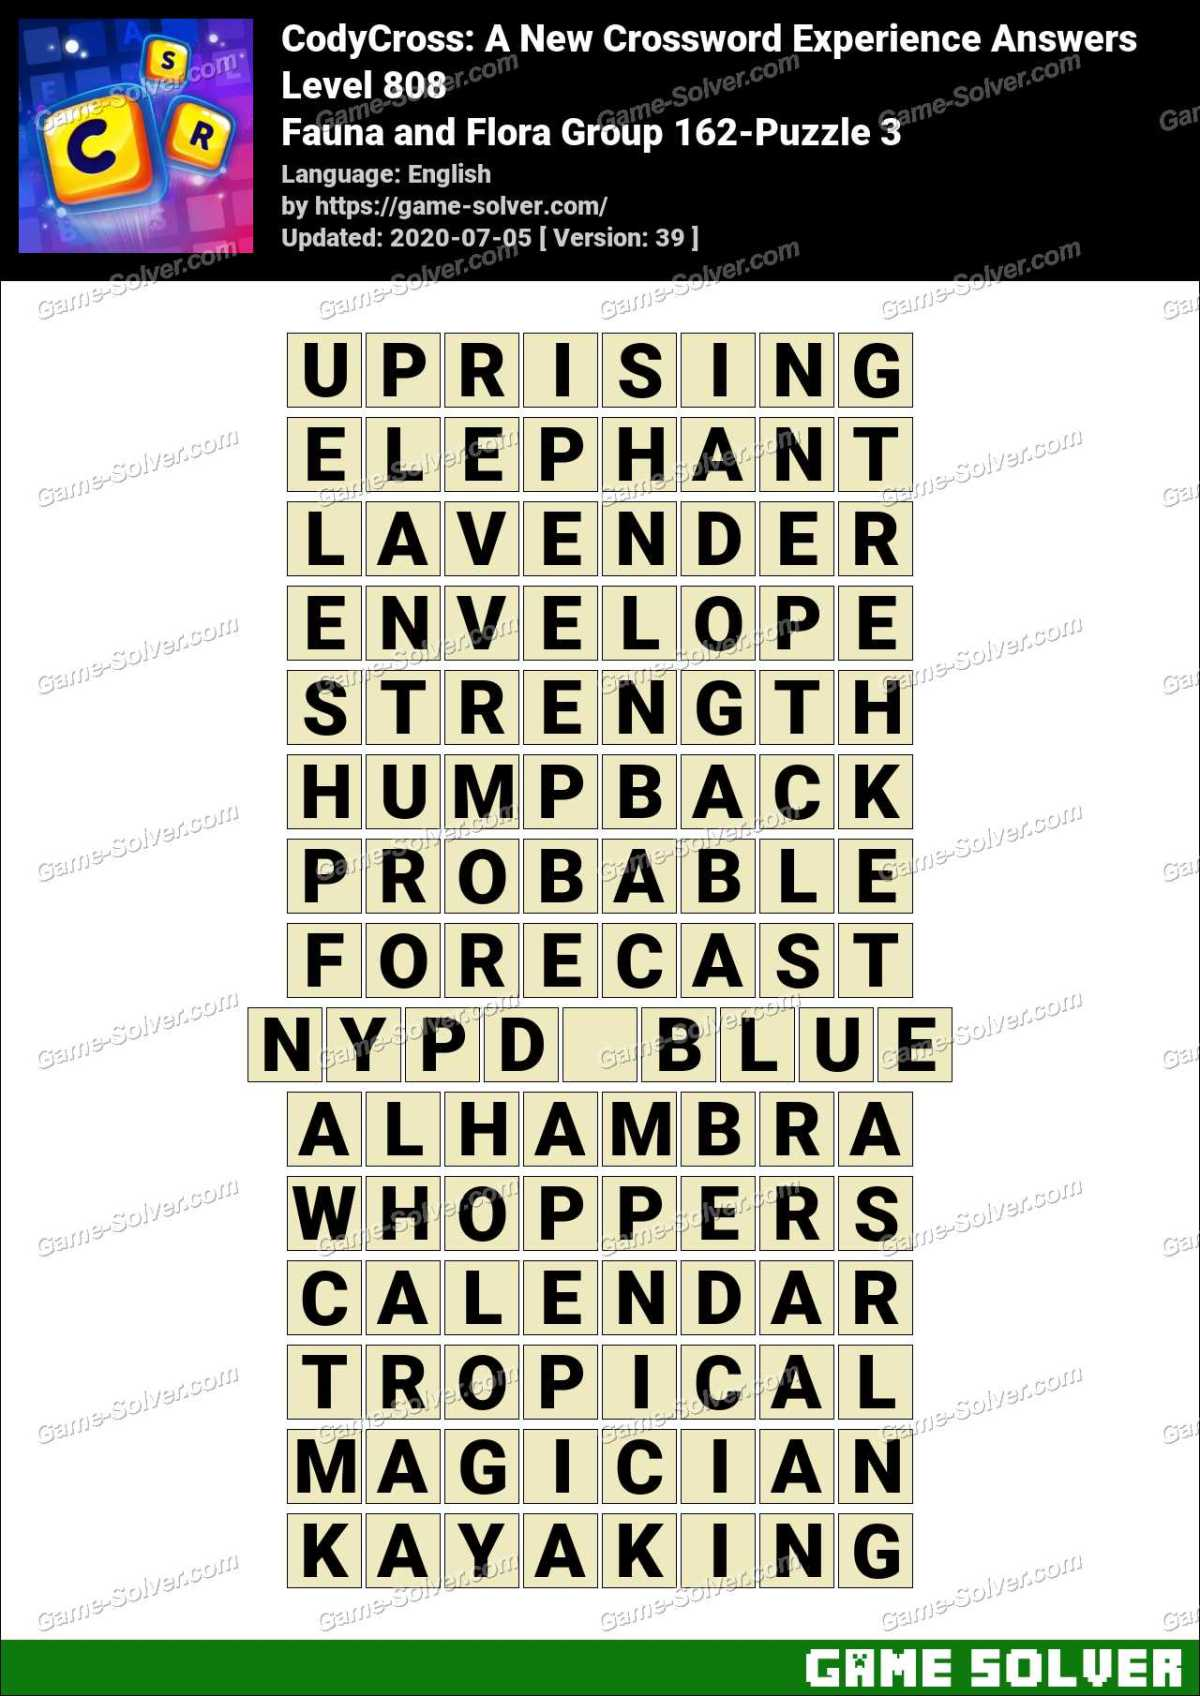 CodyCross Fauna and Flora Group 162-Puzzle 3 Answers